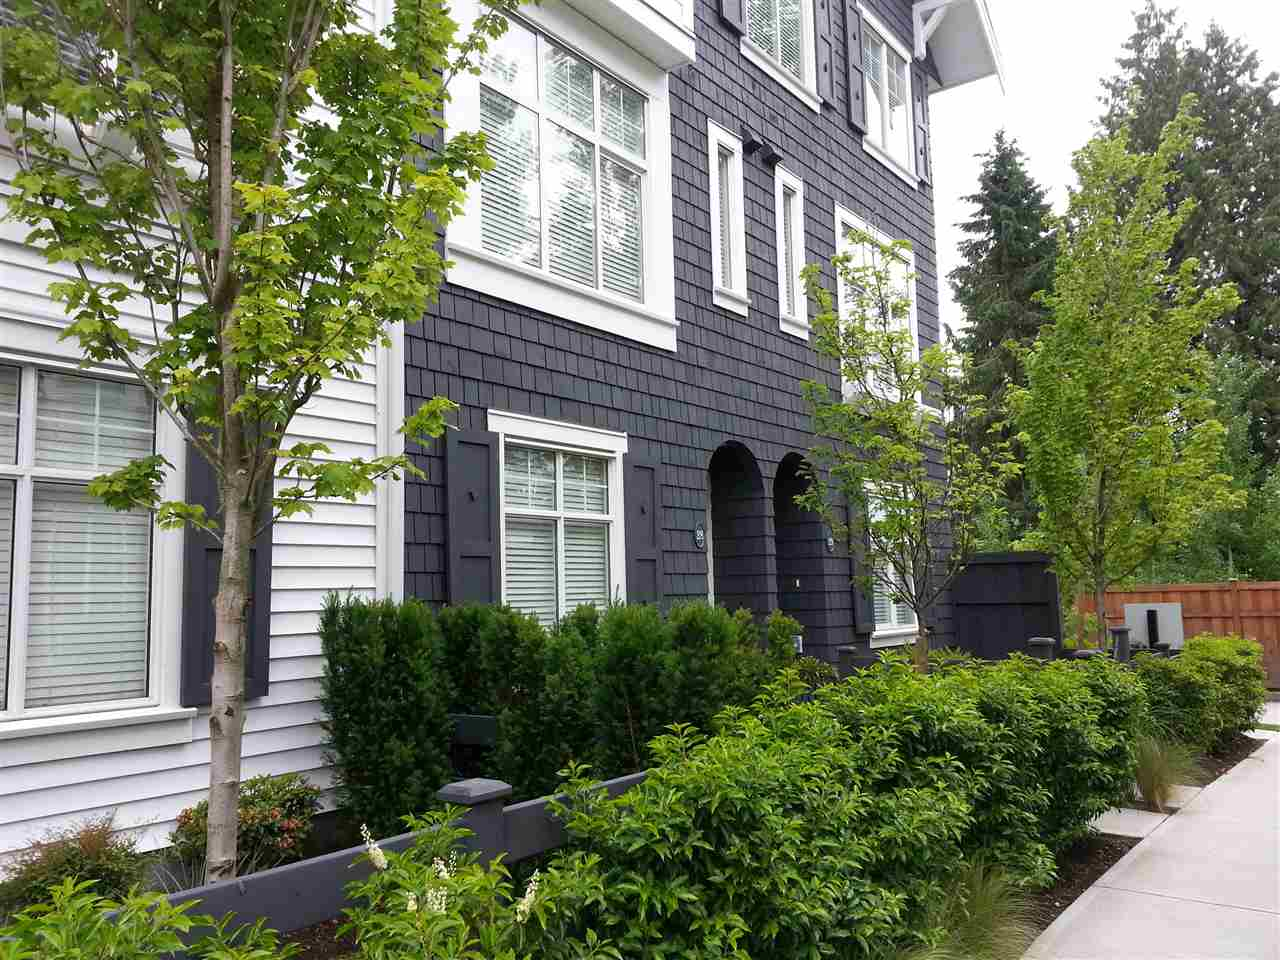 Main Photo: 28 15152 91 AVENUE in : Fleetwood Tynehead Townhouse for sale : MLS®# R2069959